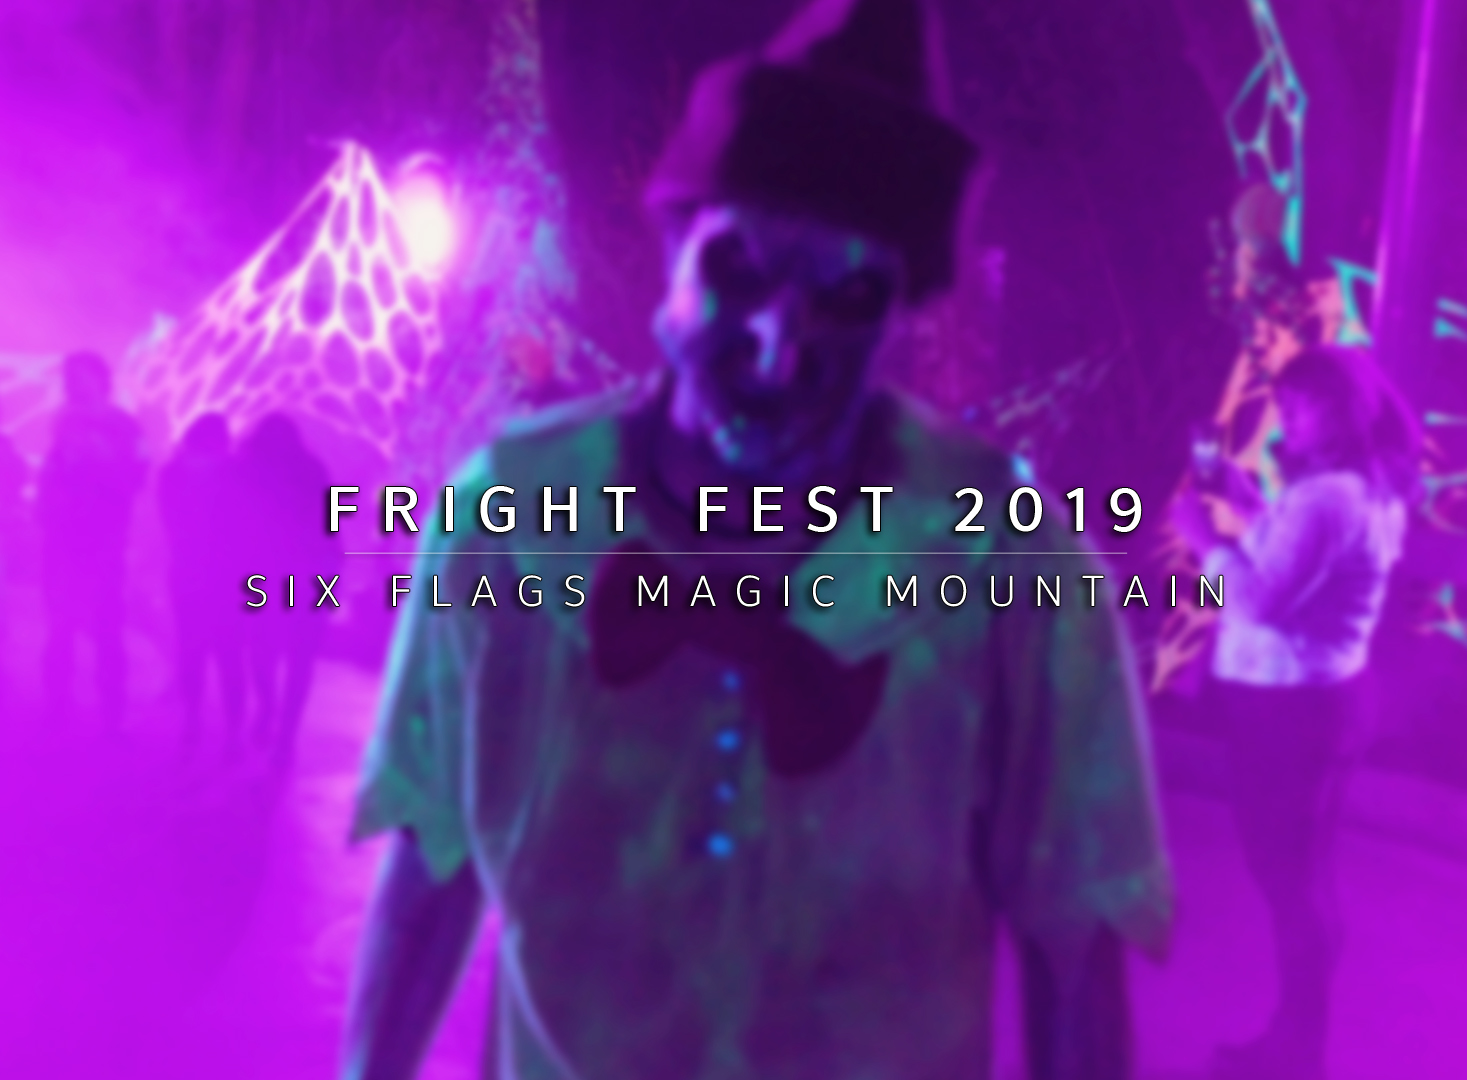 Fright Fest 2019 Magic Mountain's Fright Fest 2019